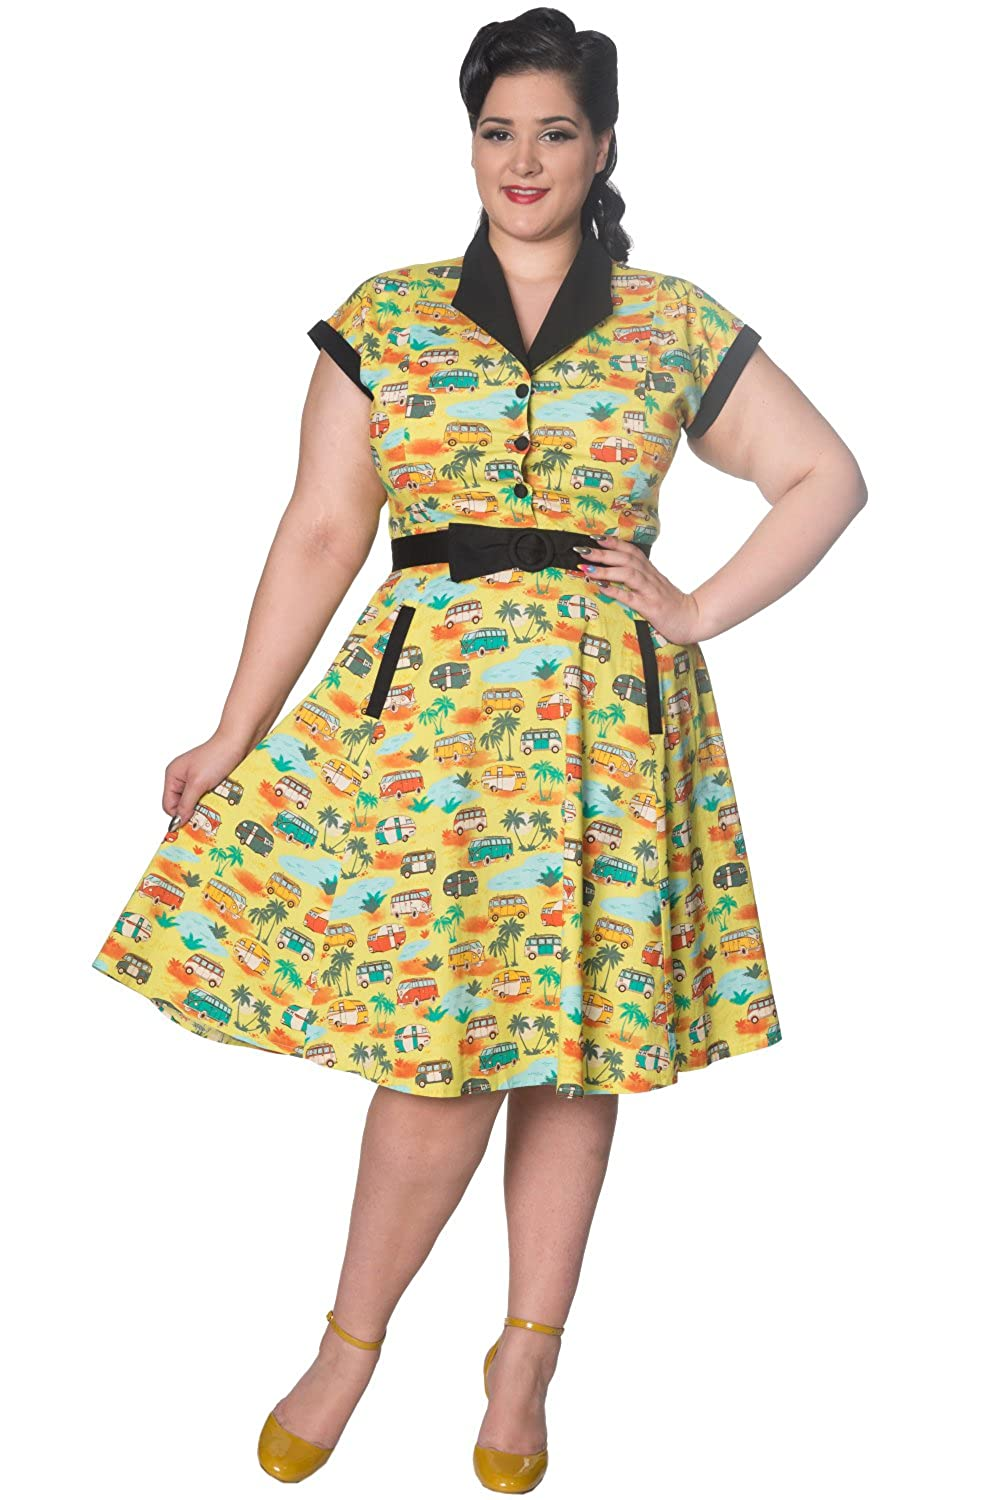 Pin Up Dresses | Pin Up Clothing Banned Starlight Plus Size Vintage Retro Womens Dress $67.95 AT vintagedancer.com